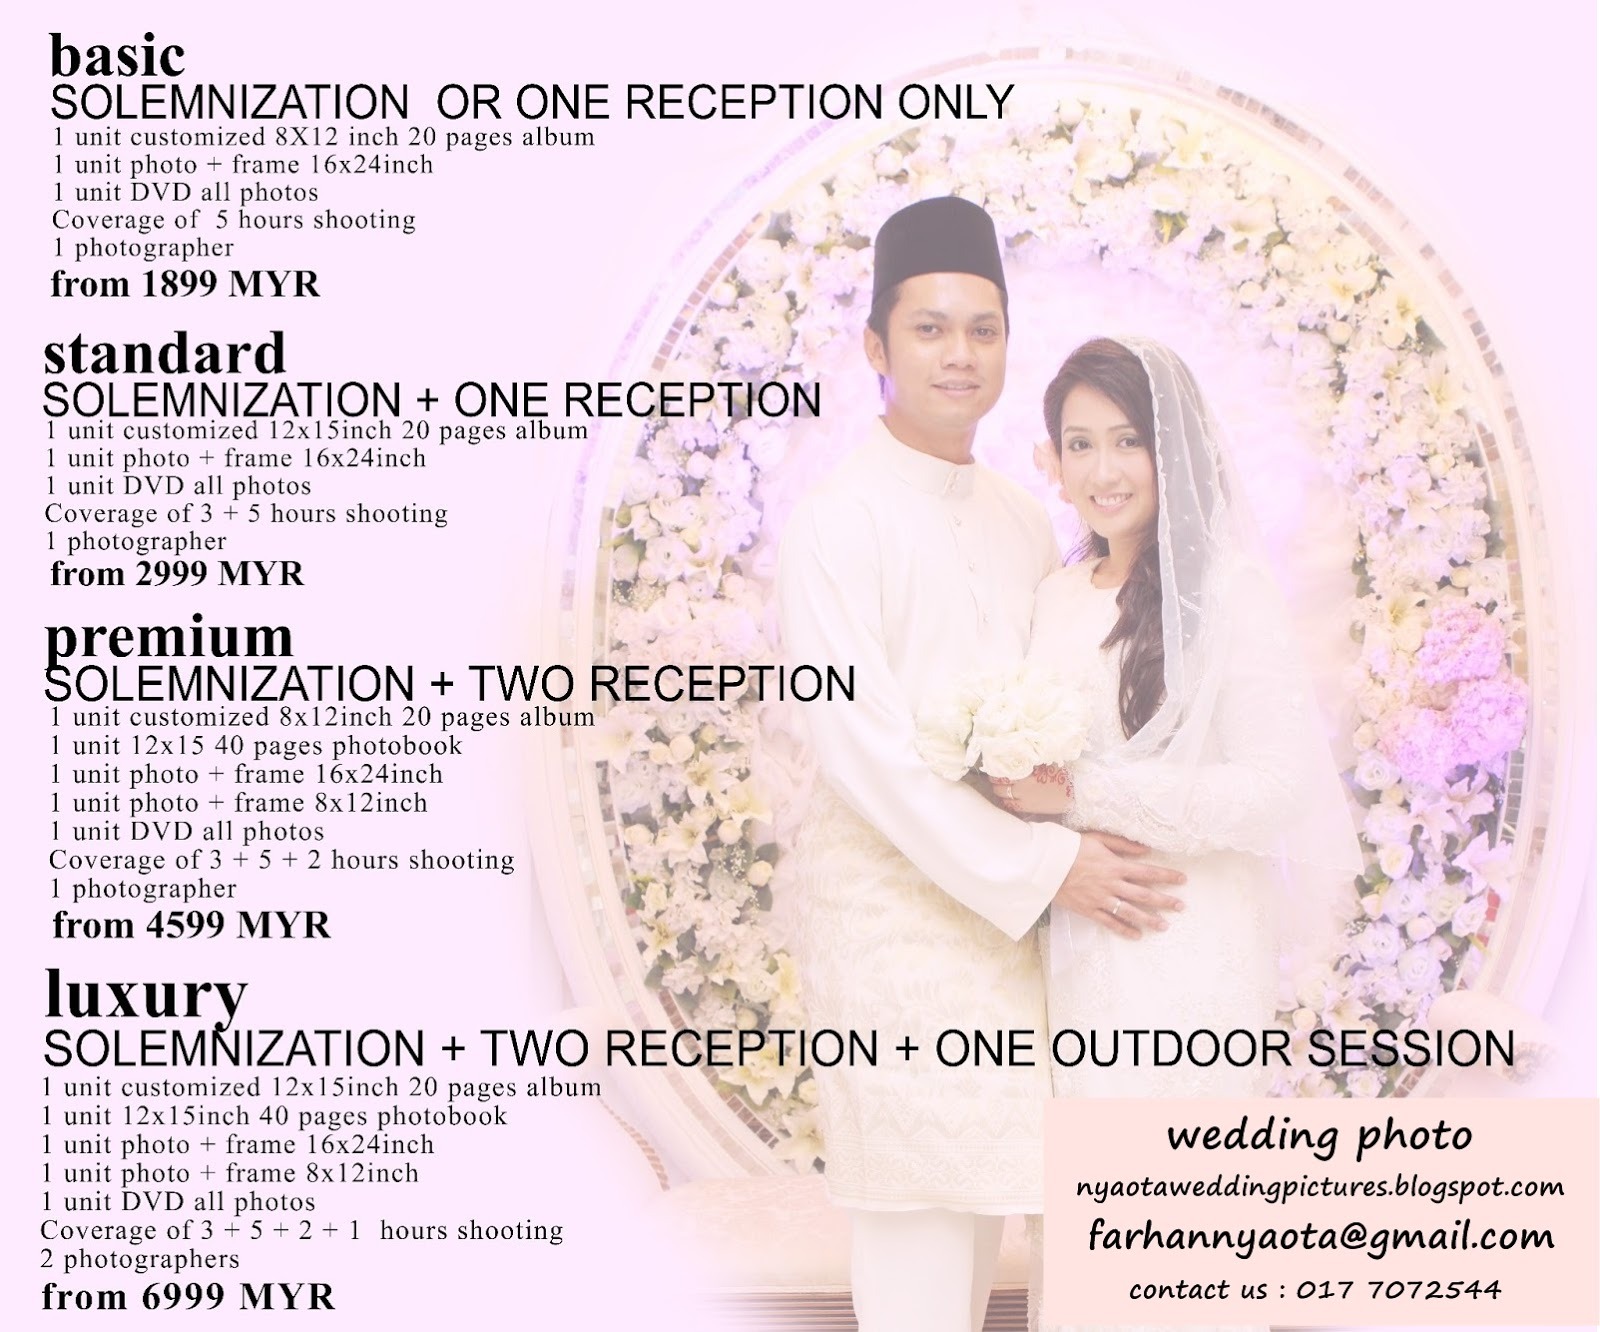 Wedding Photo Pre Package Price Malaysia